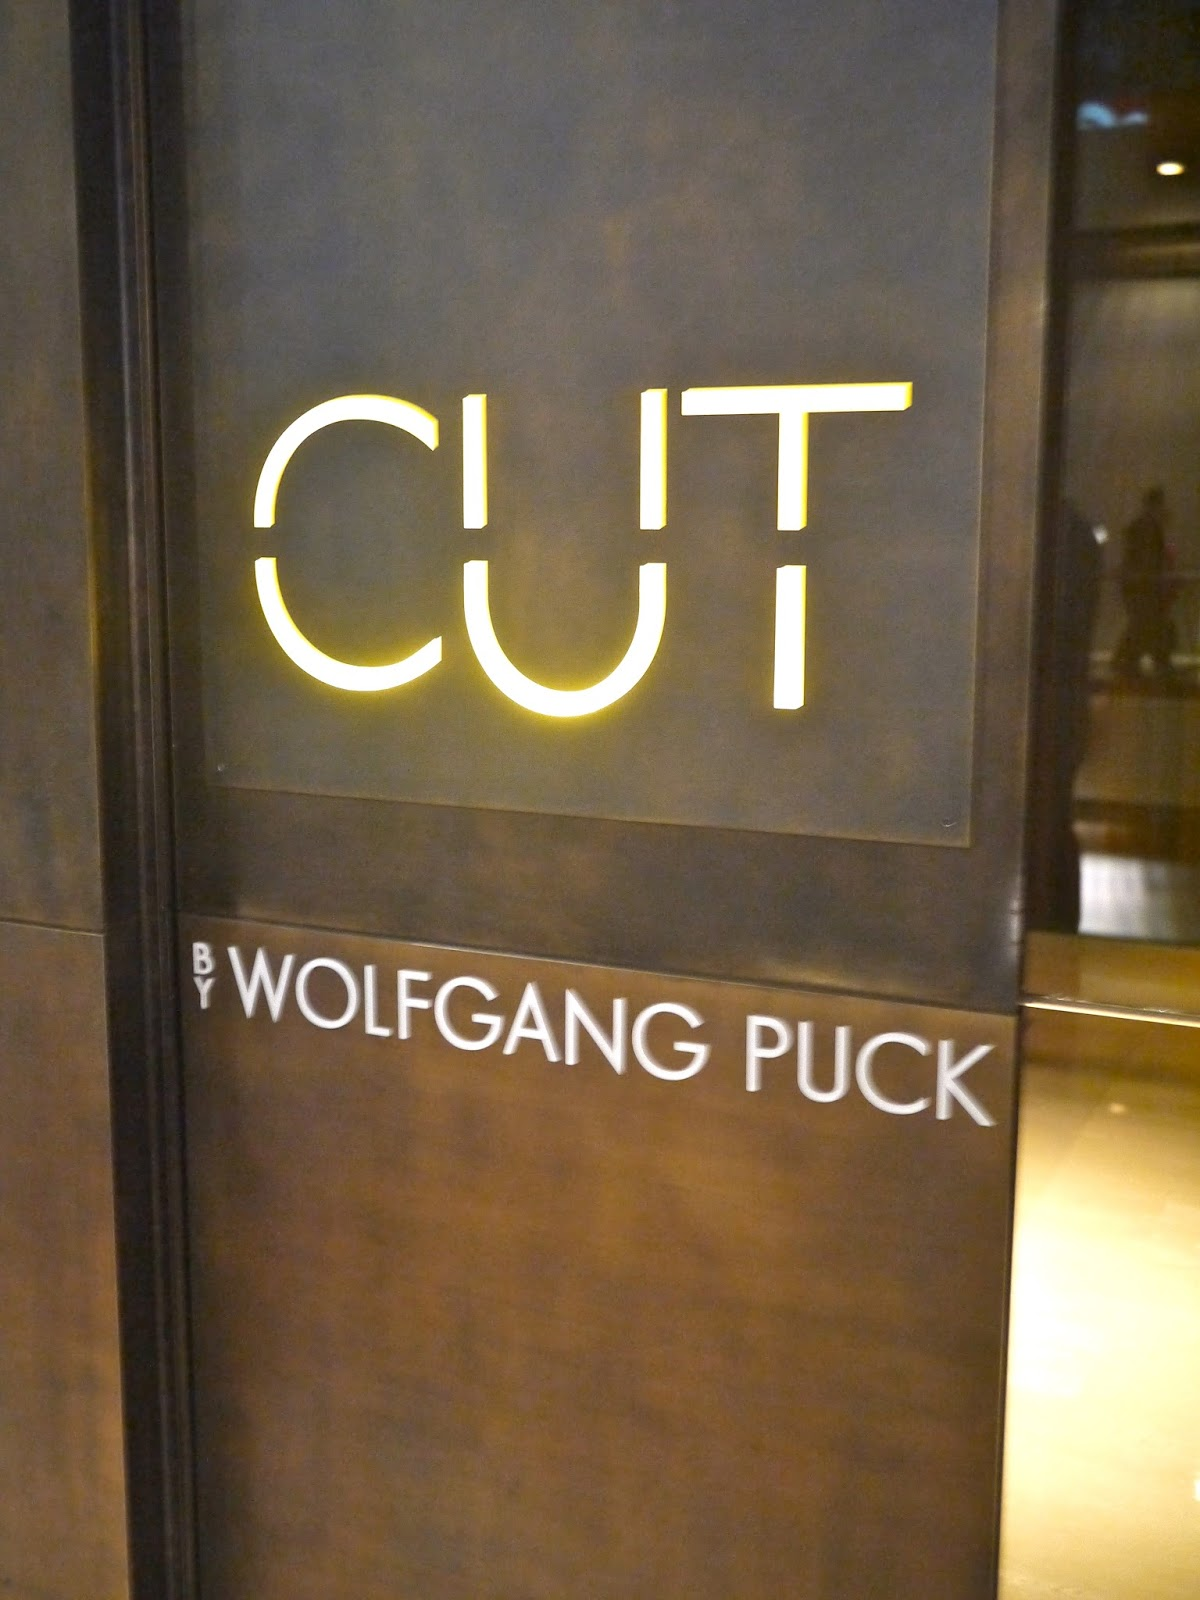 Dinner at Cut, Singapore - PrettyHungry